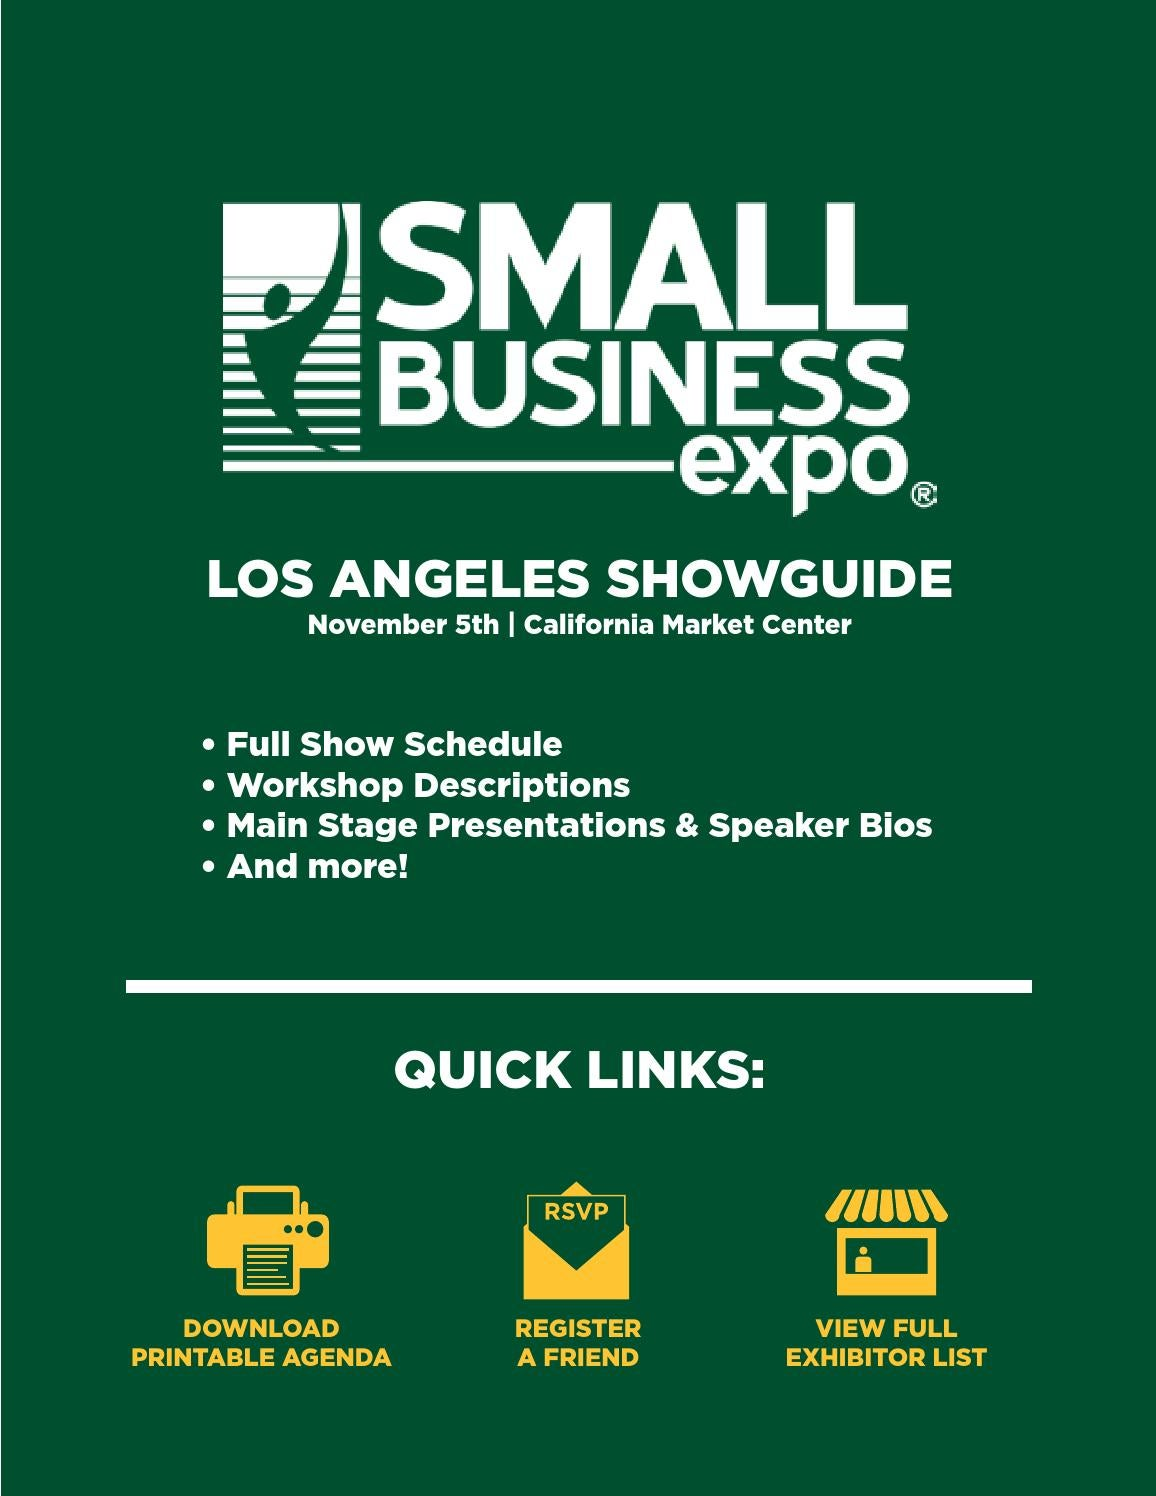 Los Angeles ShowGuide 2015 by Small Business Expo - issuu